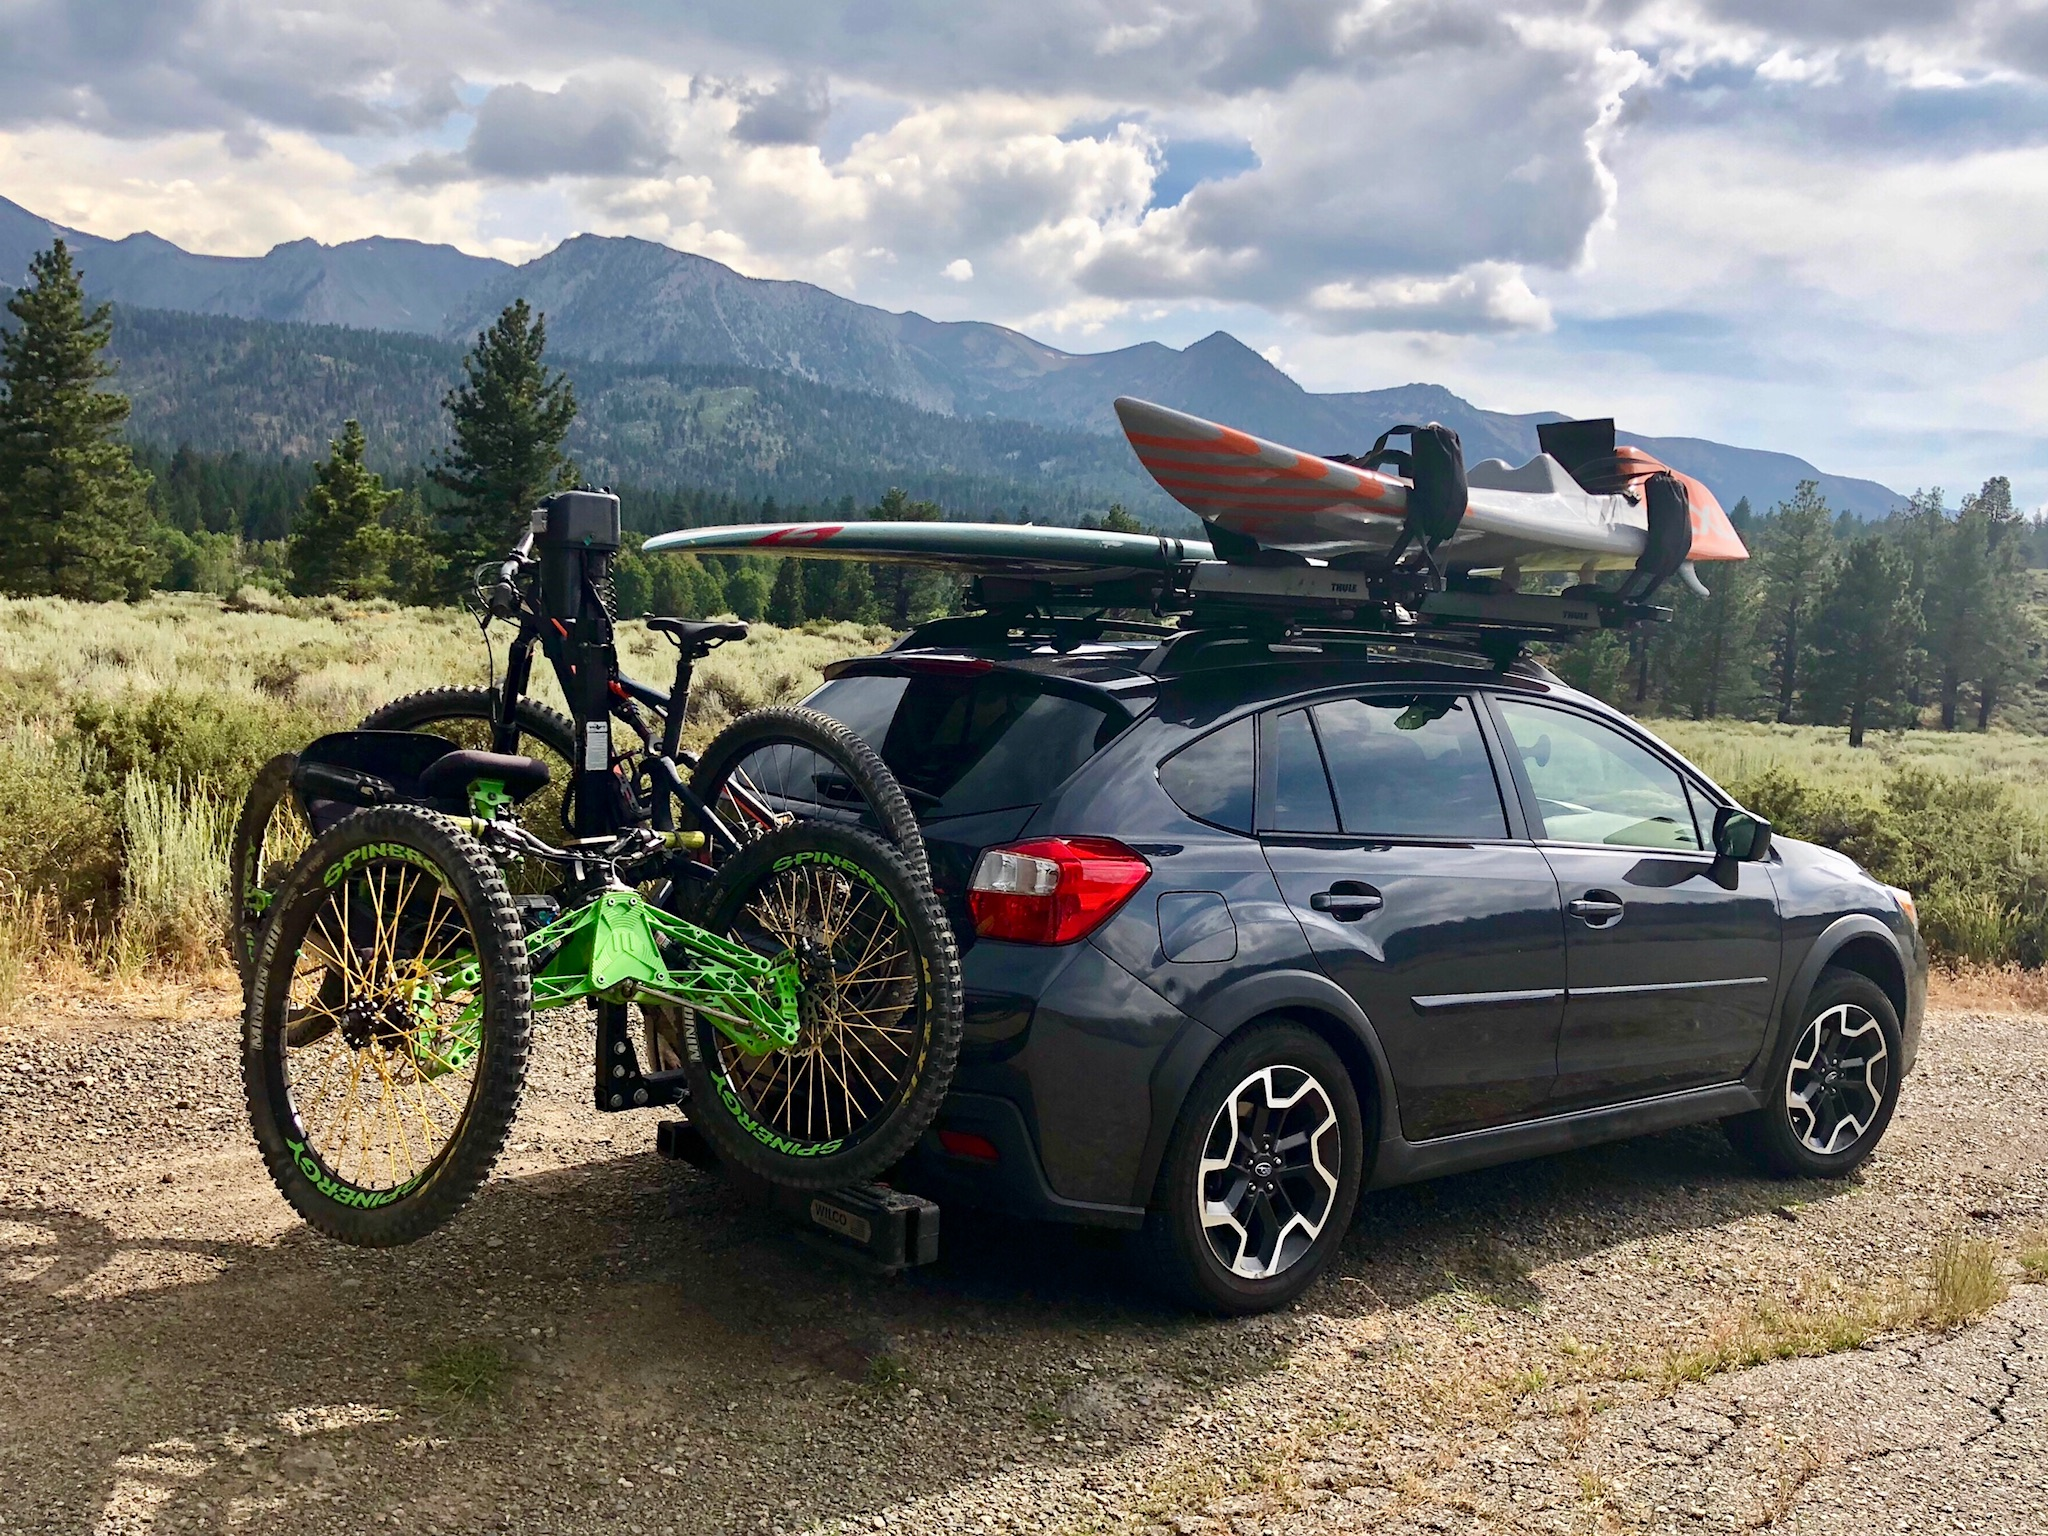 All loaded up with boards and bikes